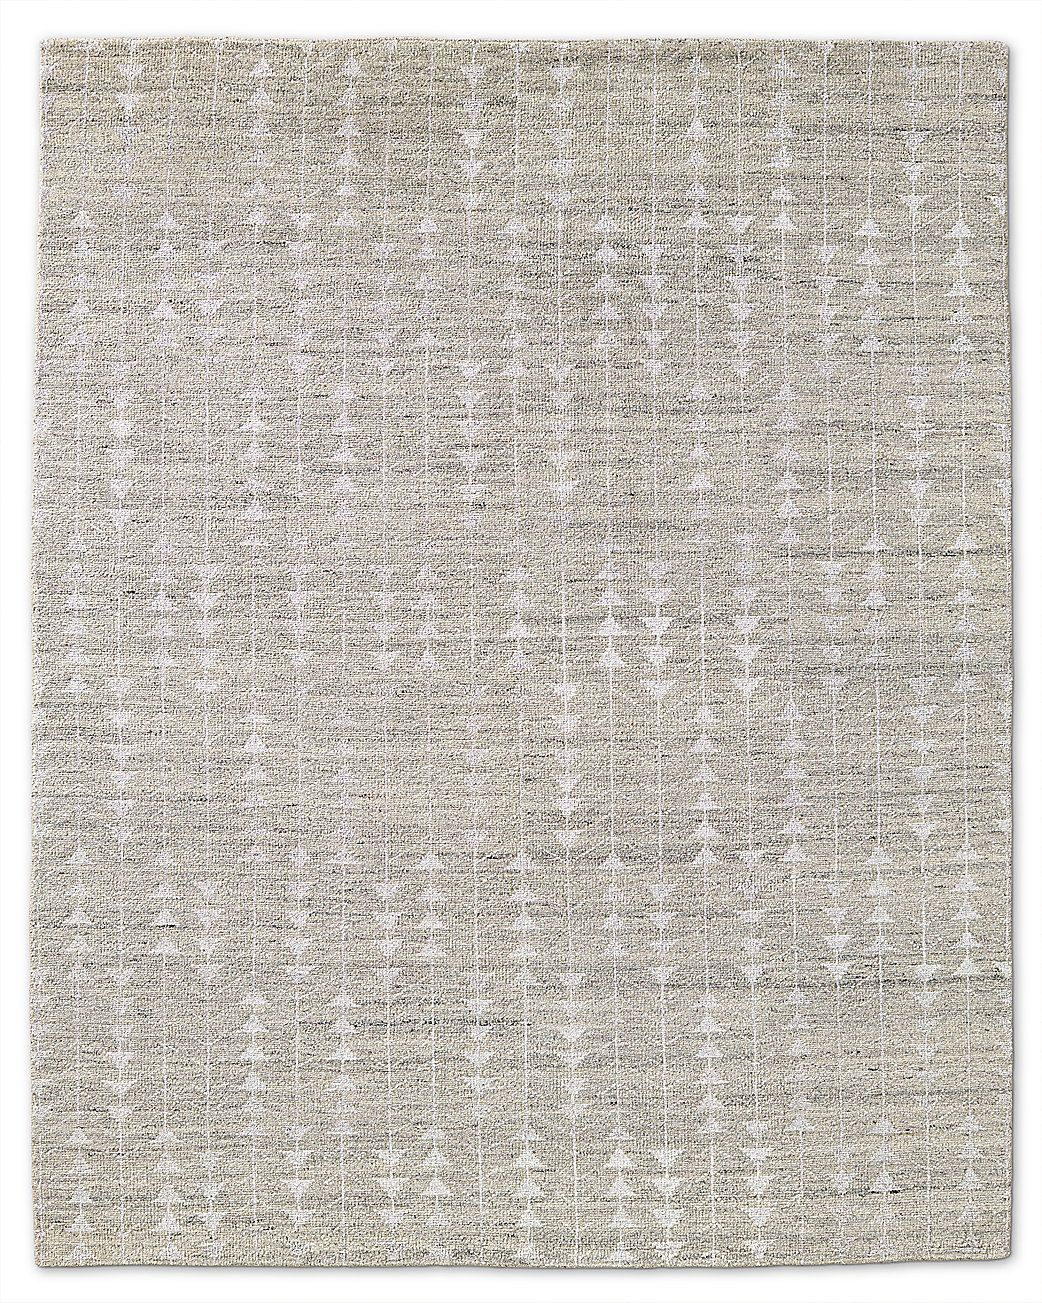 Oatmeal johnsen living room pinterest products rugs and wool - Room Rugs